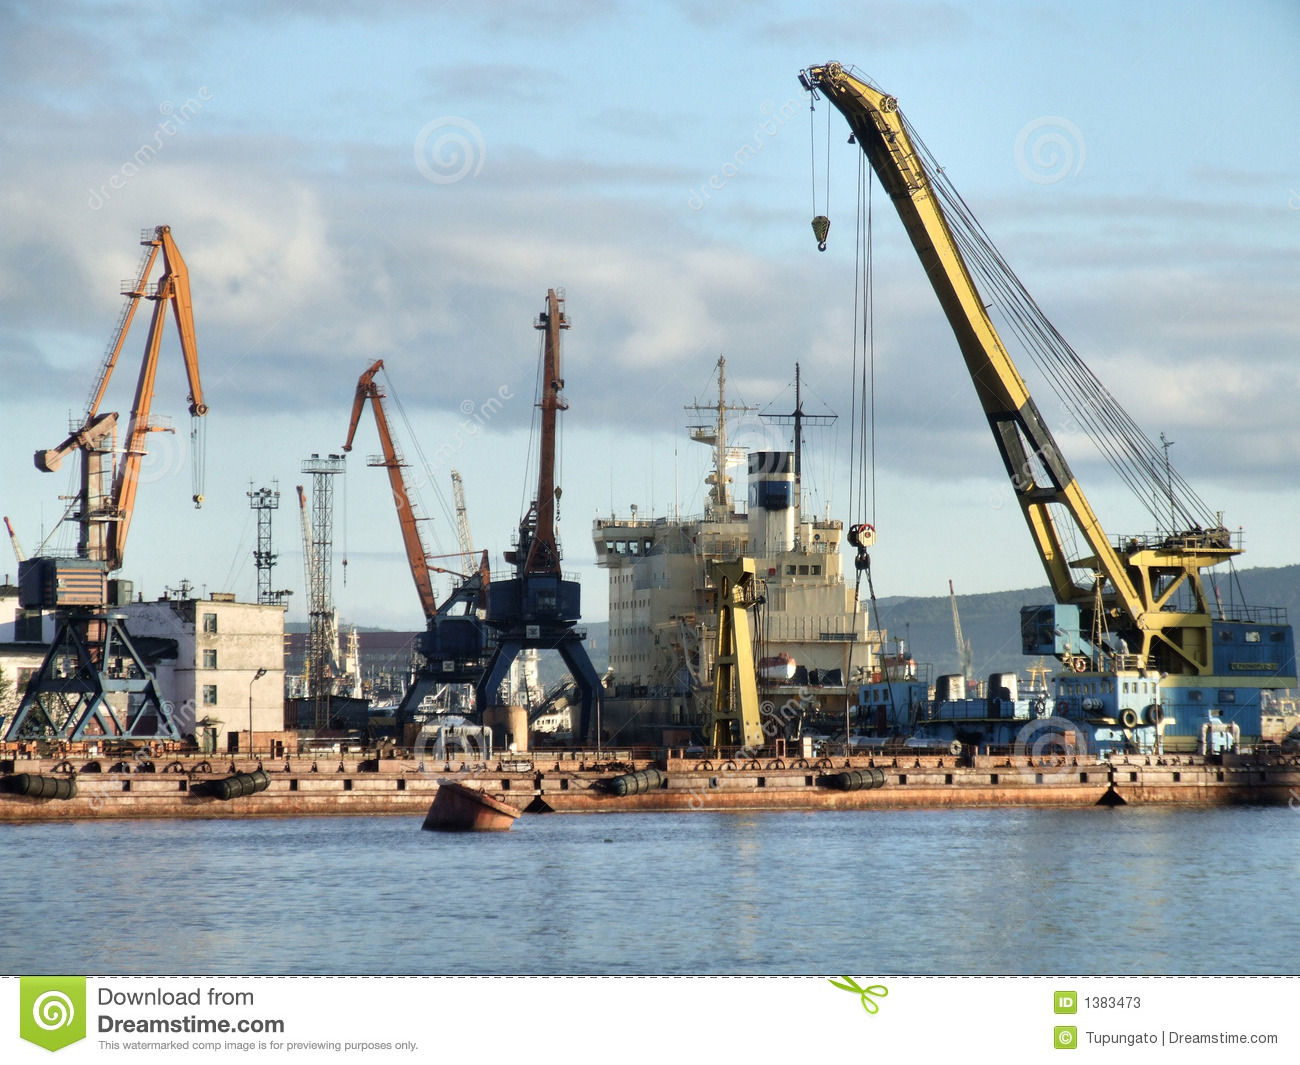 Busy cargo harbor infrastructure